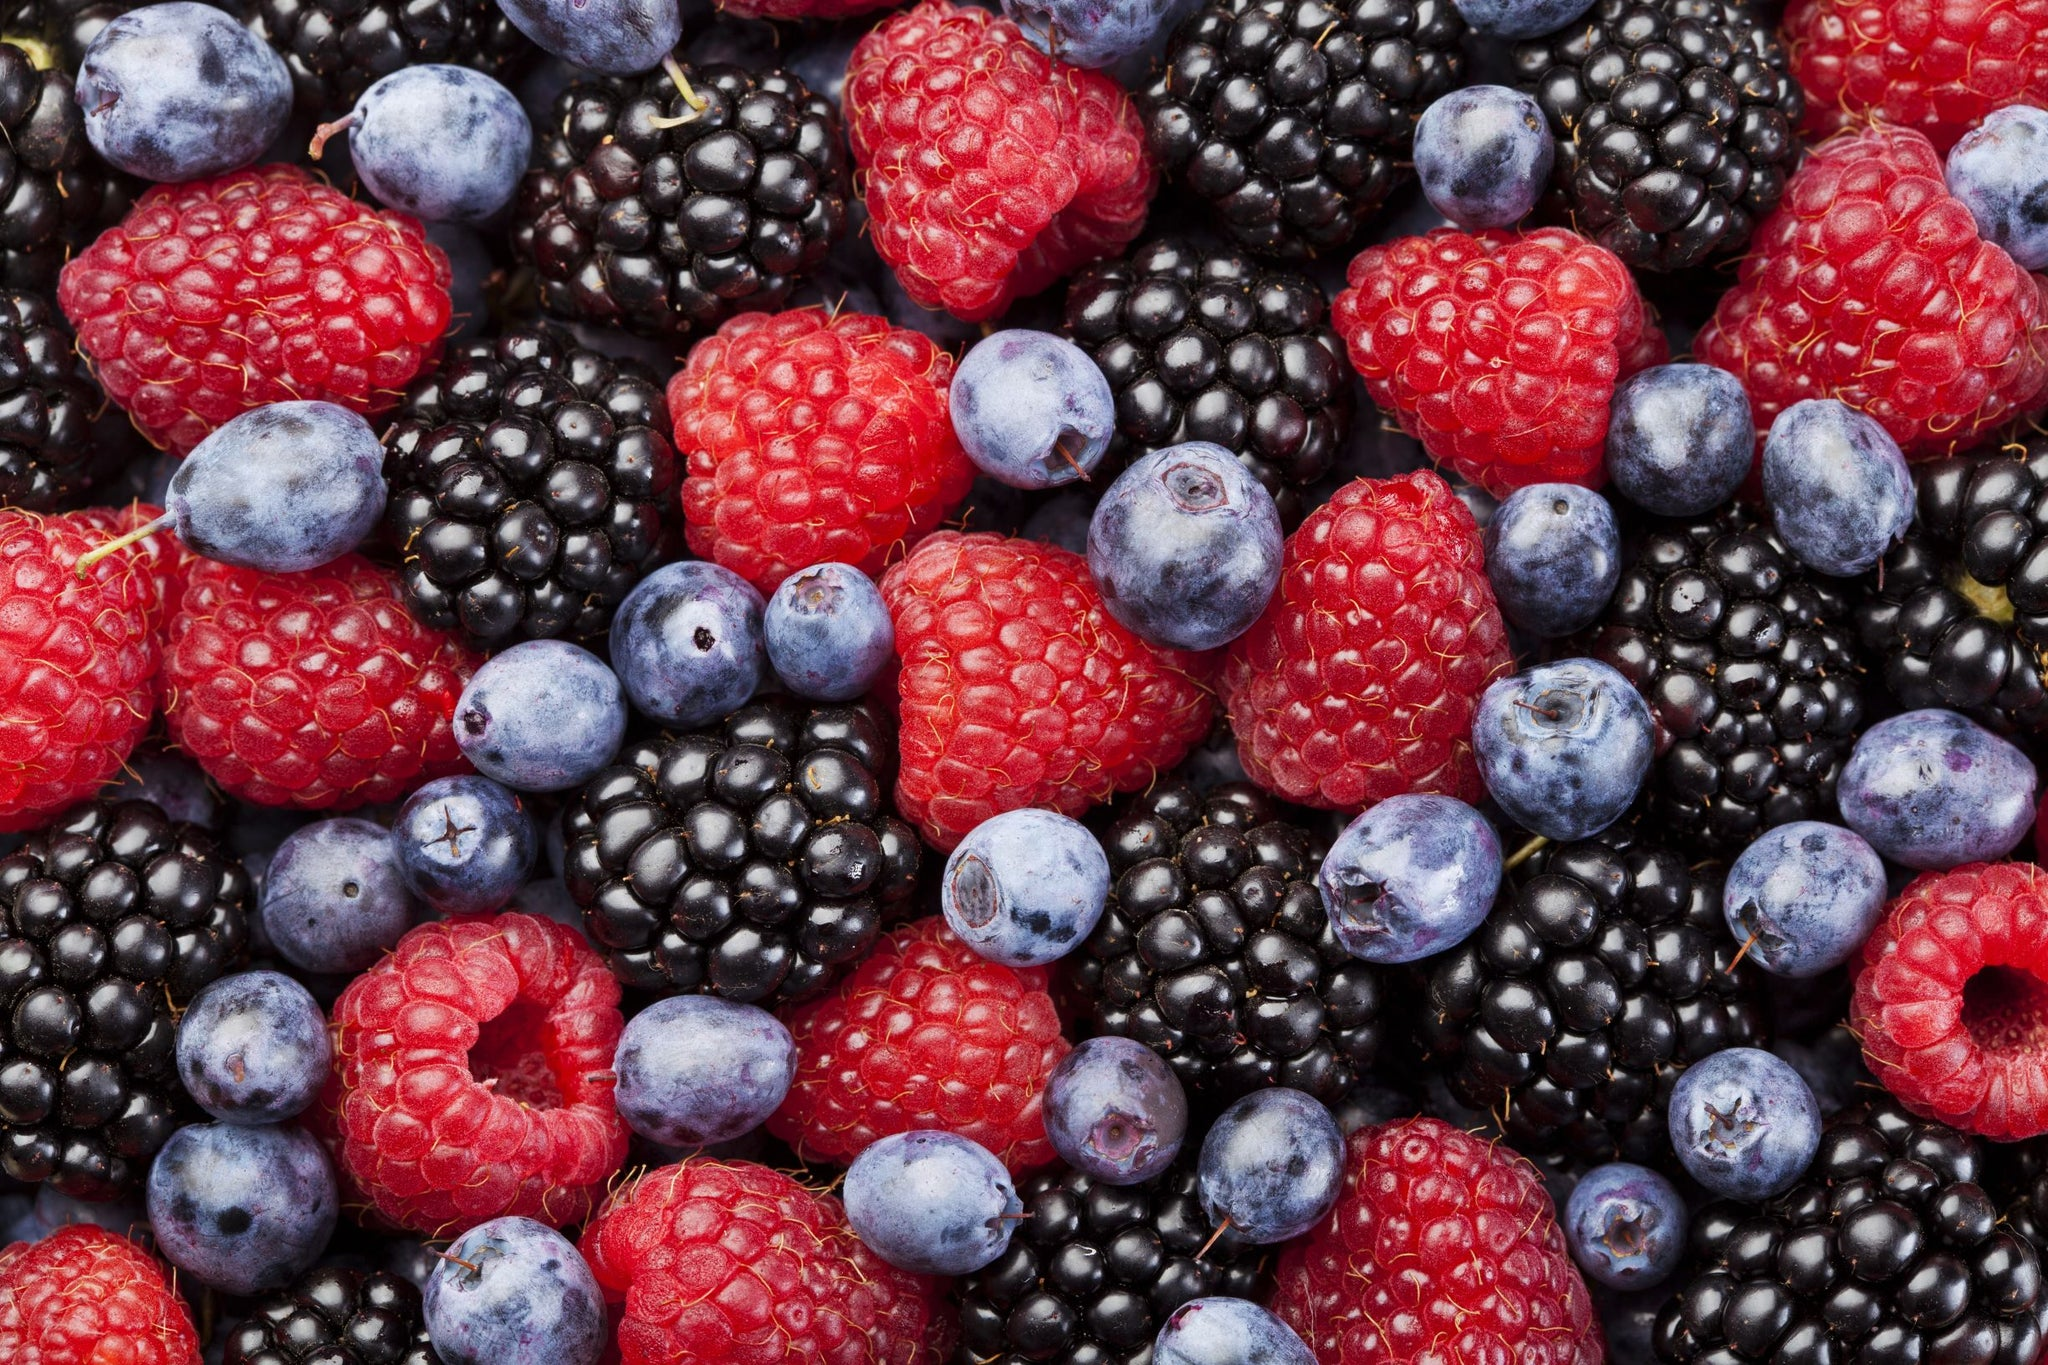 Sysco Classic Individually Quick Frozen Mixed Berry Blend - Blueberries/Blackberries/Strawberries/Raspberries 2.5 kg - 2 Pack [$6.90/kg]